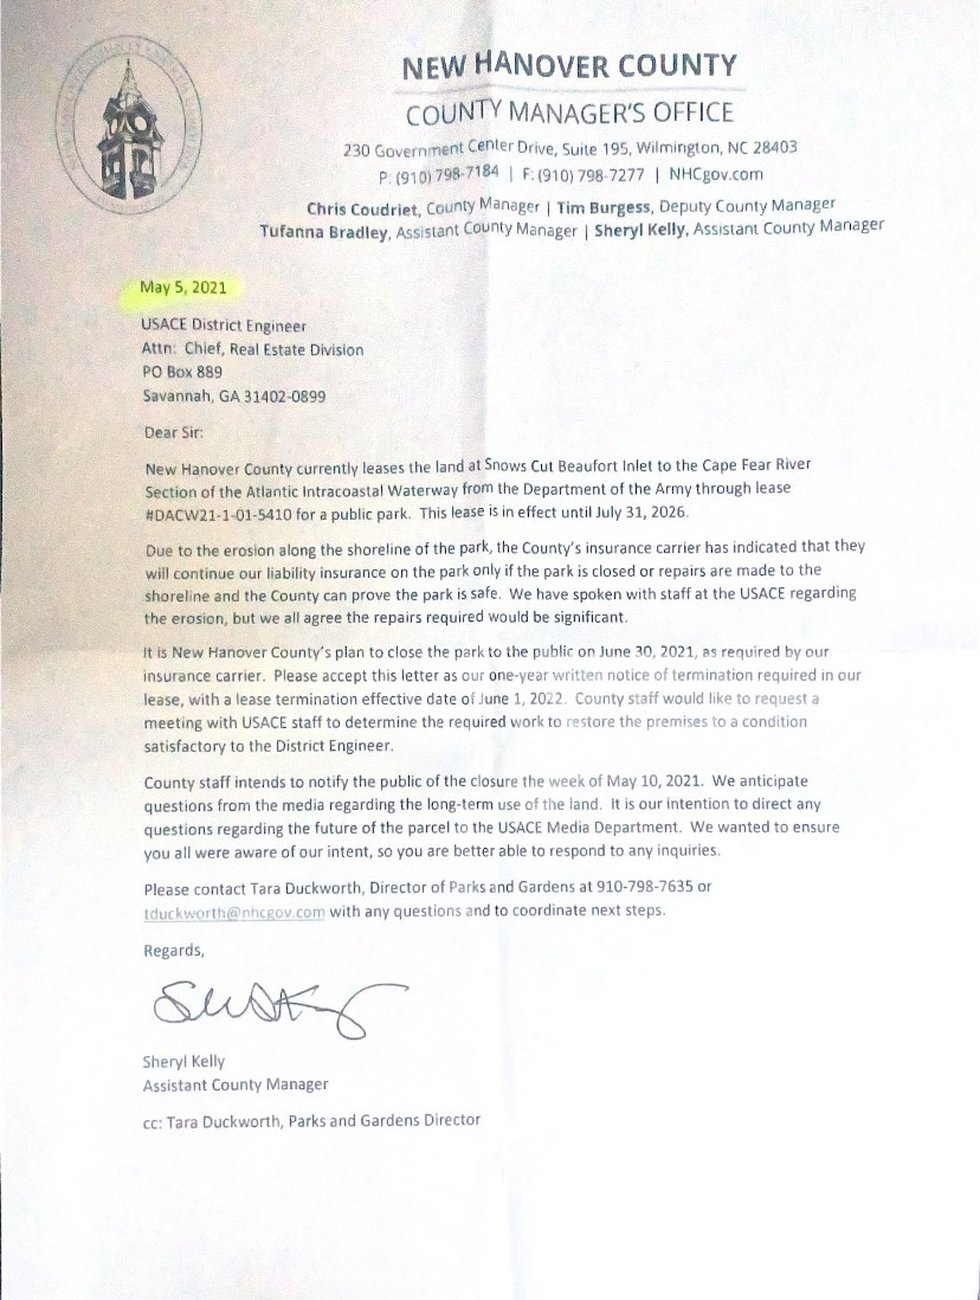 New Hanover County termination letter of lease with the U.S. Army Corps of Engineers.